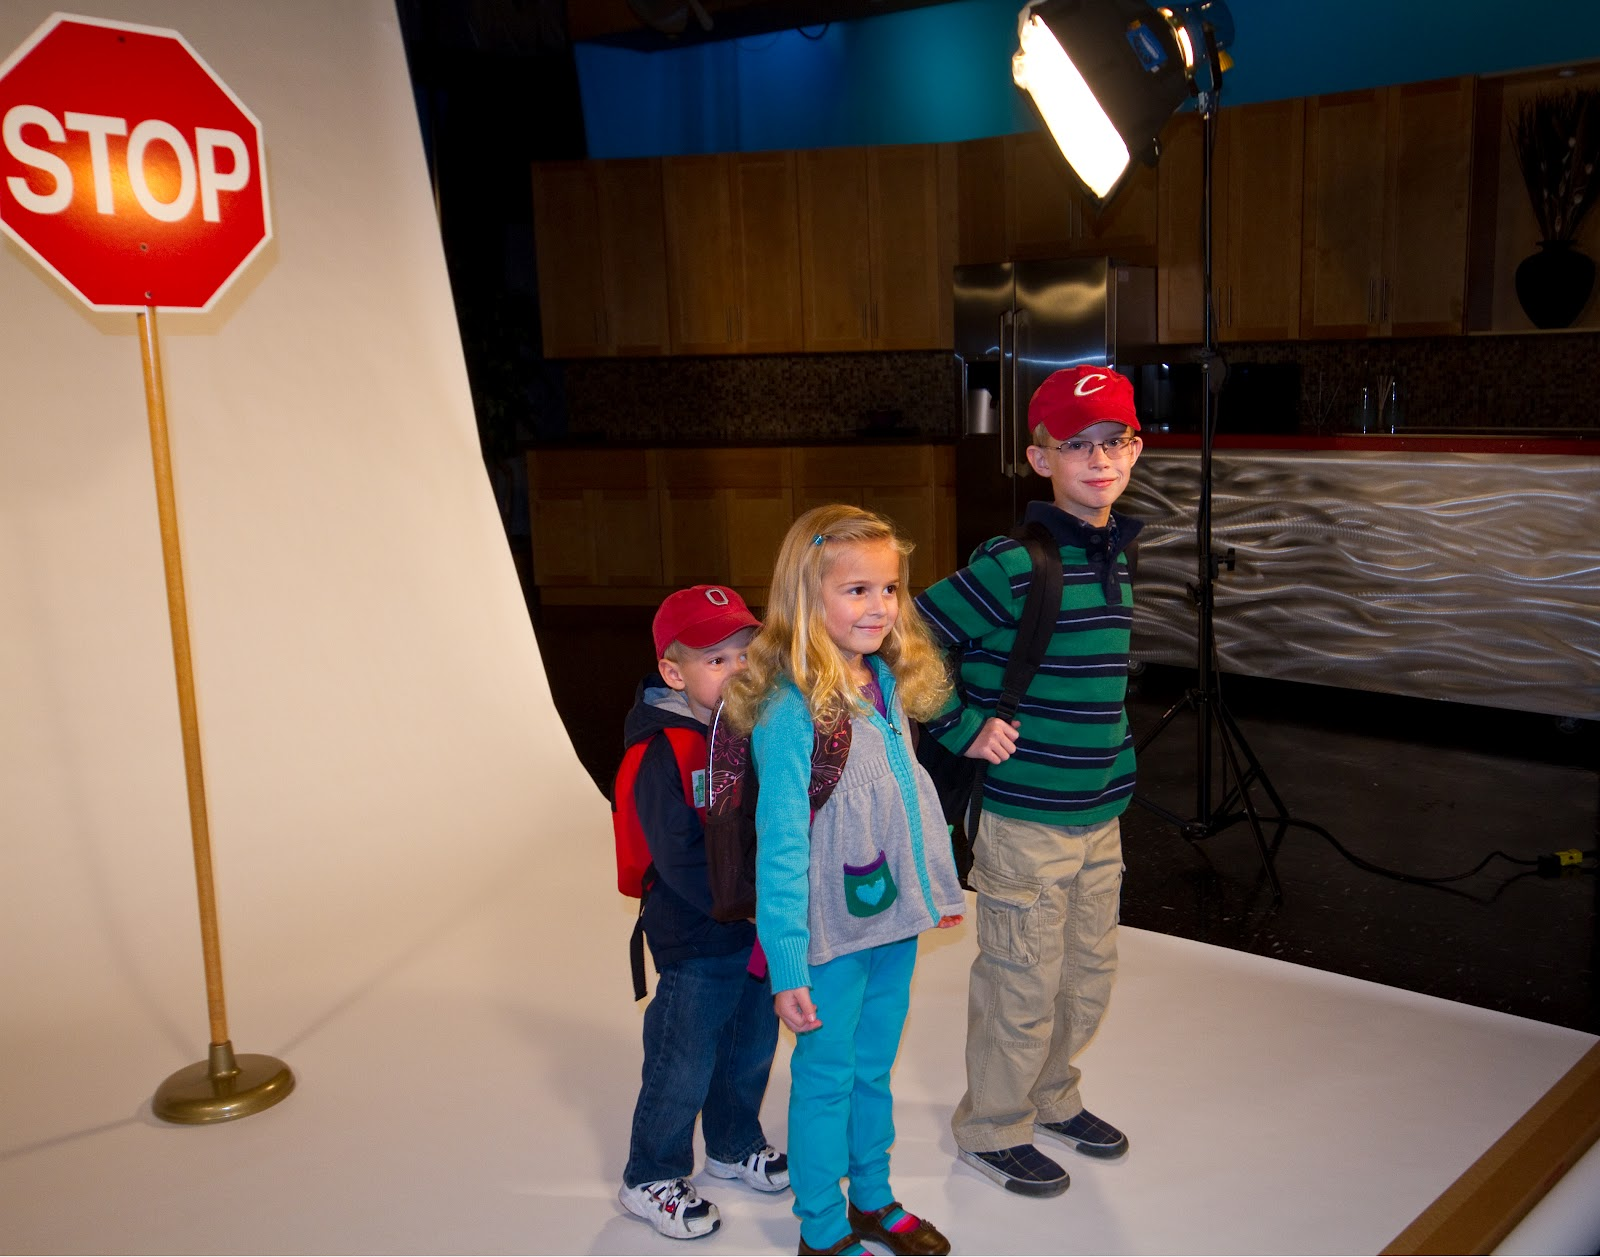 See your kids on WKYC on the Bus Stop Forecast. Prize entitles winner to have up to four children between the ages of 4 and 12 featured in the WKYC's Forecast Kids weather segments. Clips air in rotation for approximately three months. | Value: Priceless | Minimum bid: $100